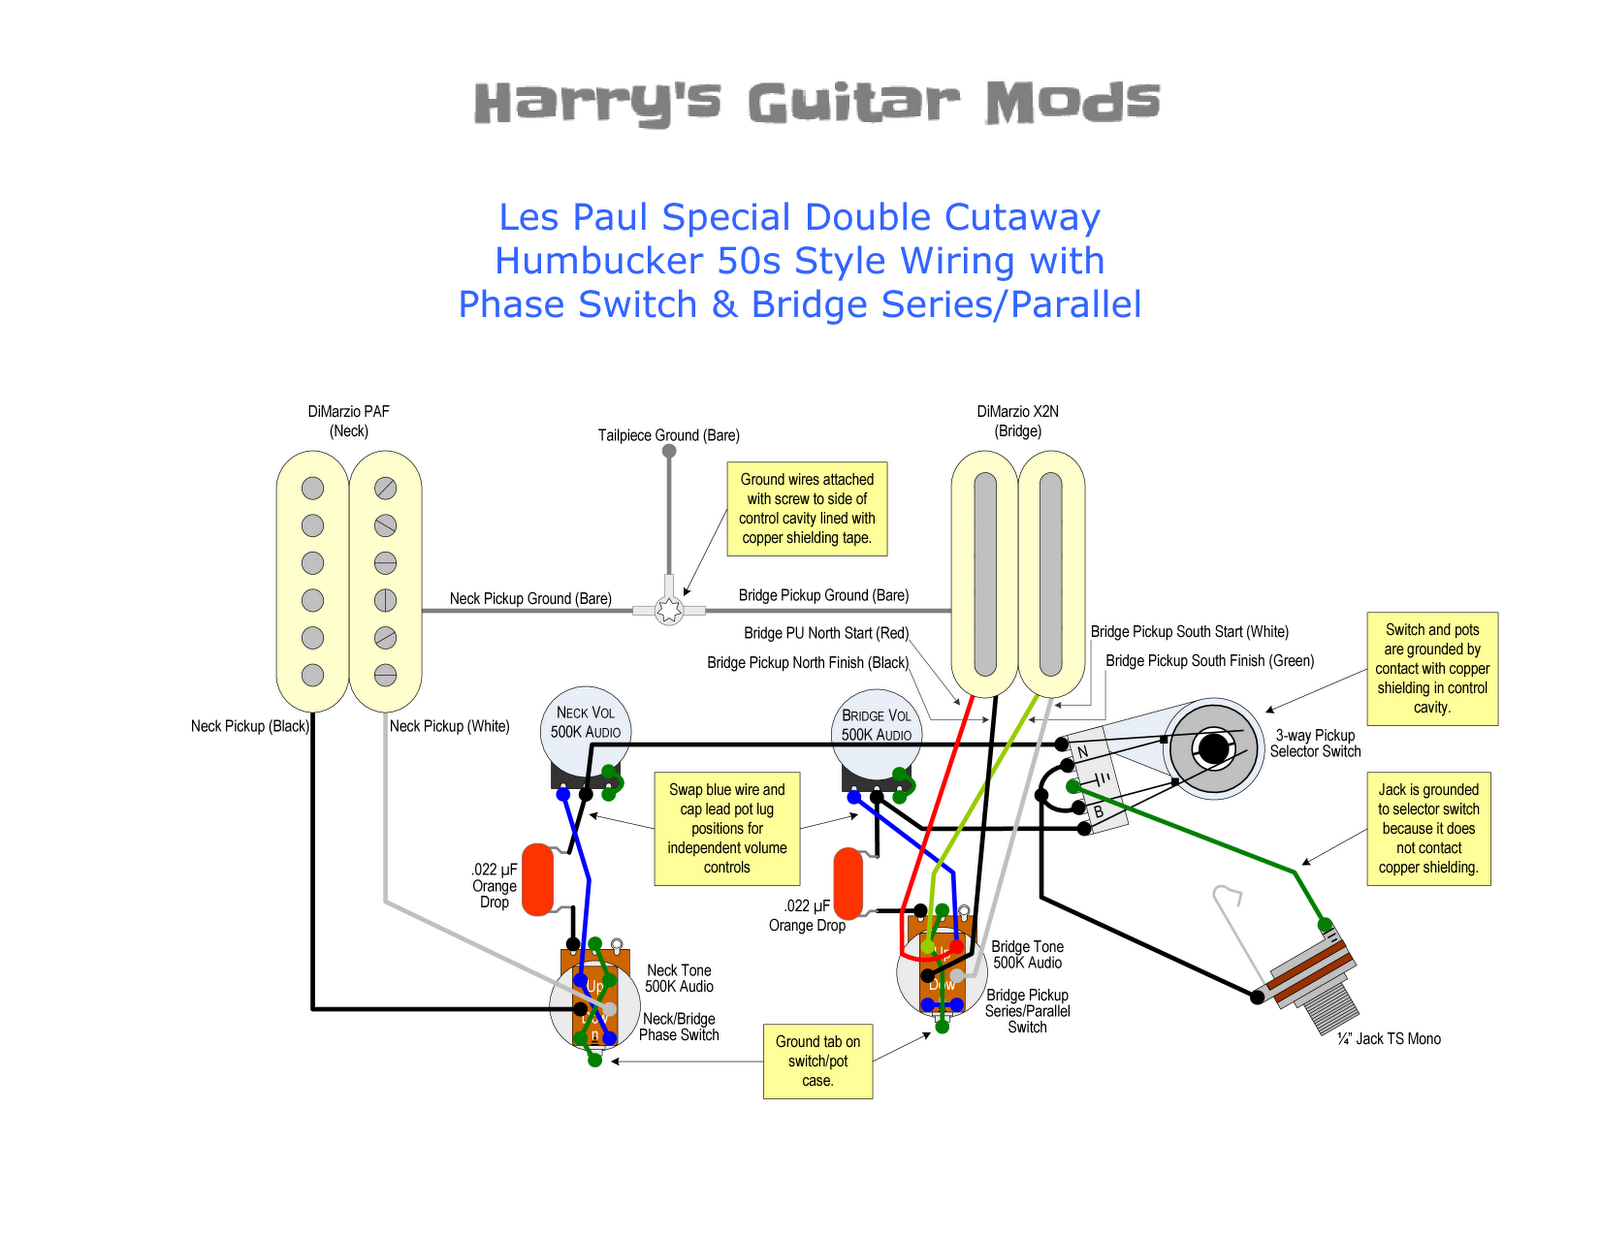 LPS+Wiring+Diagram harry's guitar mods controls wiring upgrade dimarzio les paul wiring diagram at gsmx.co